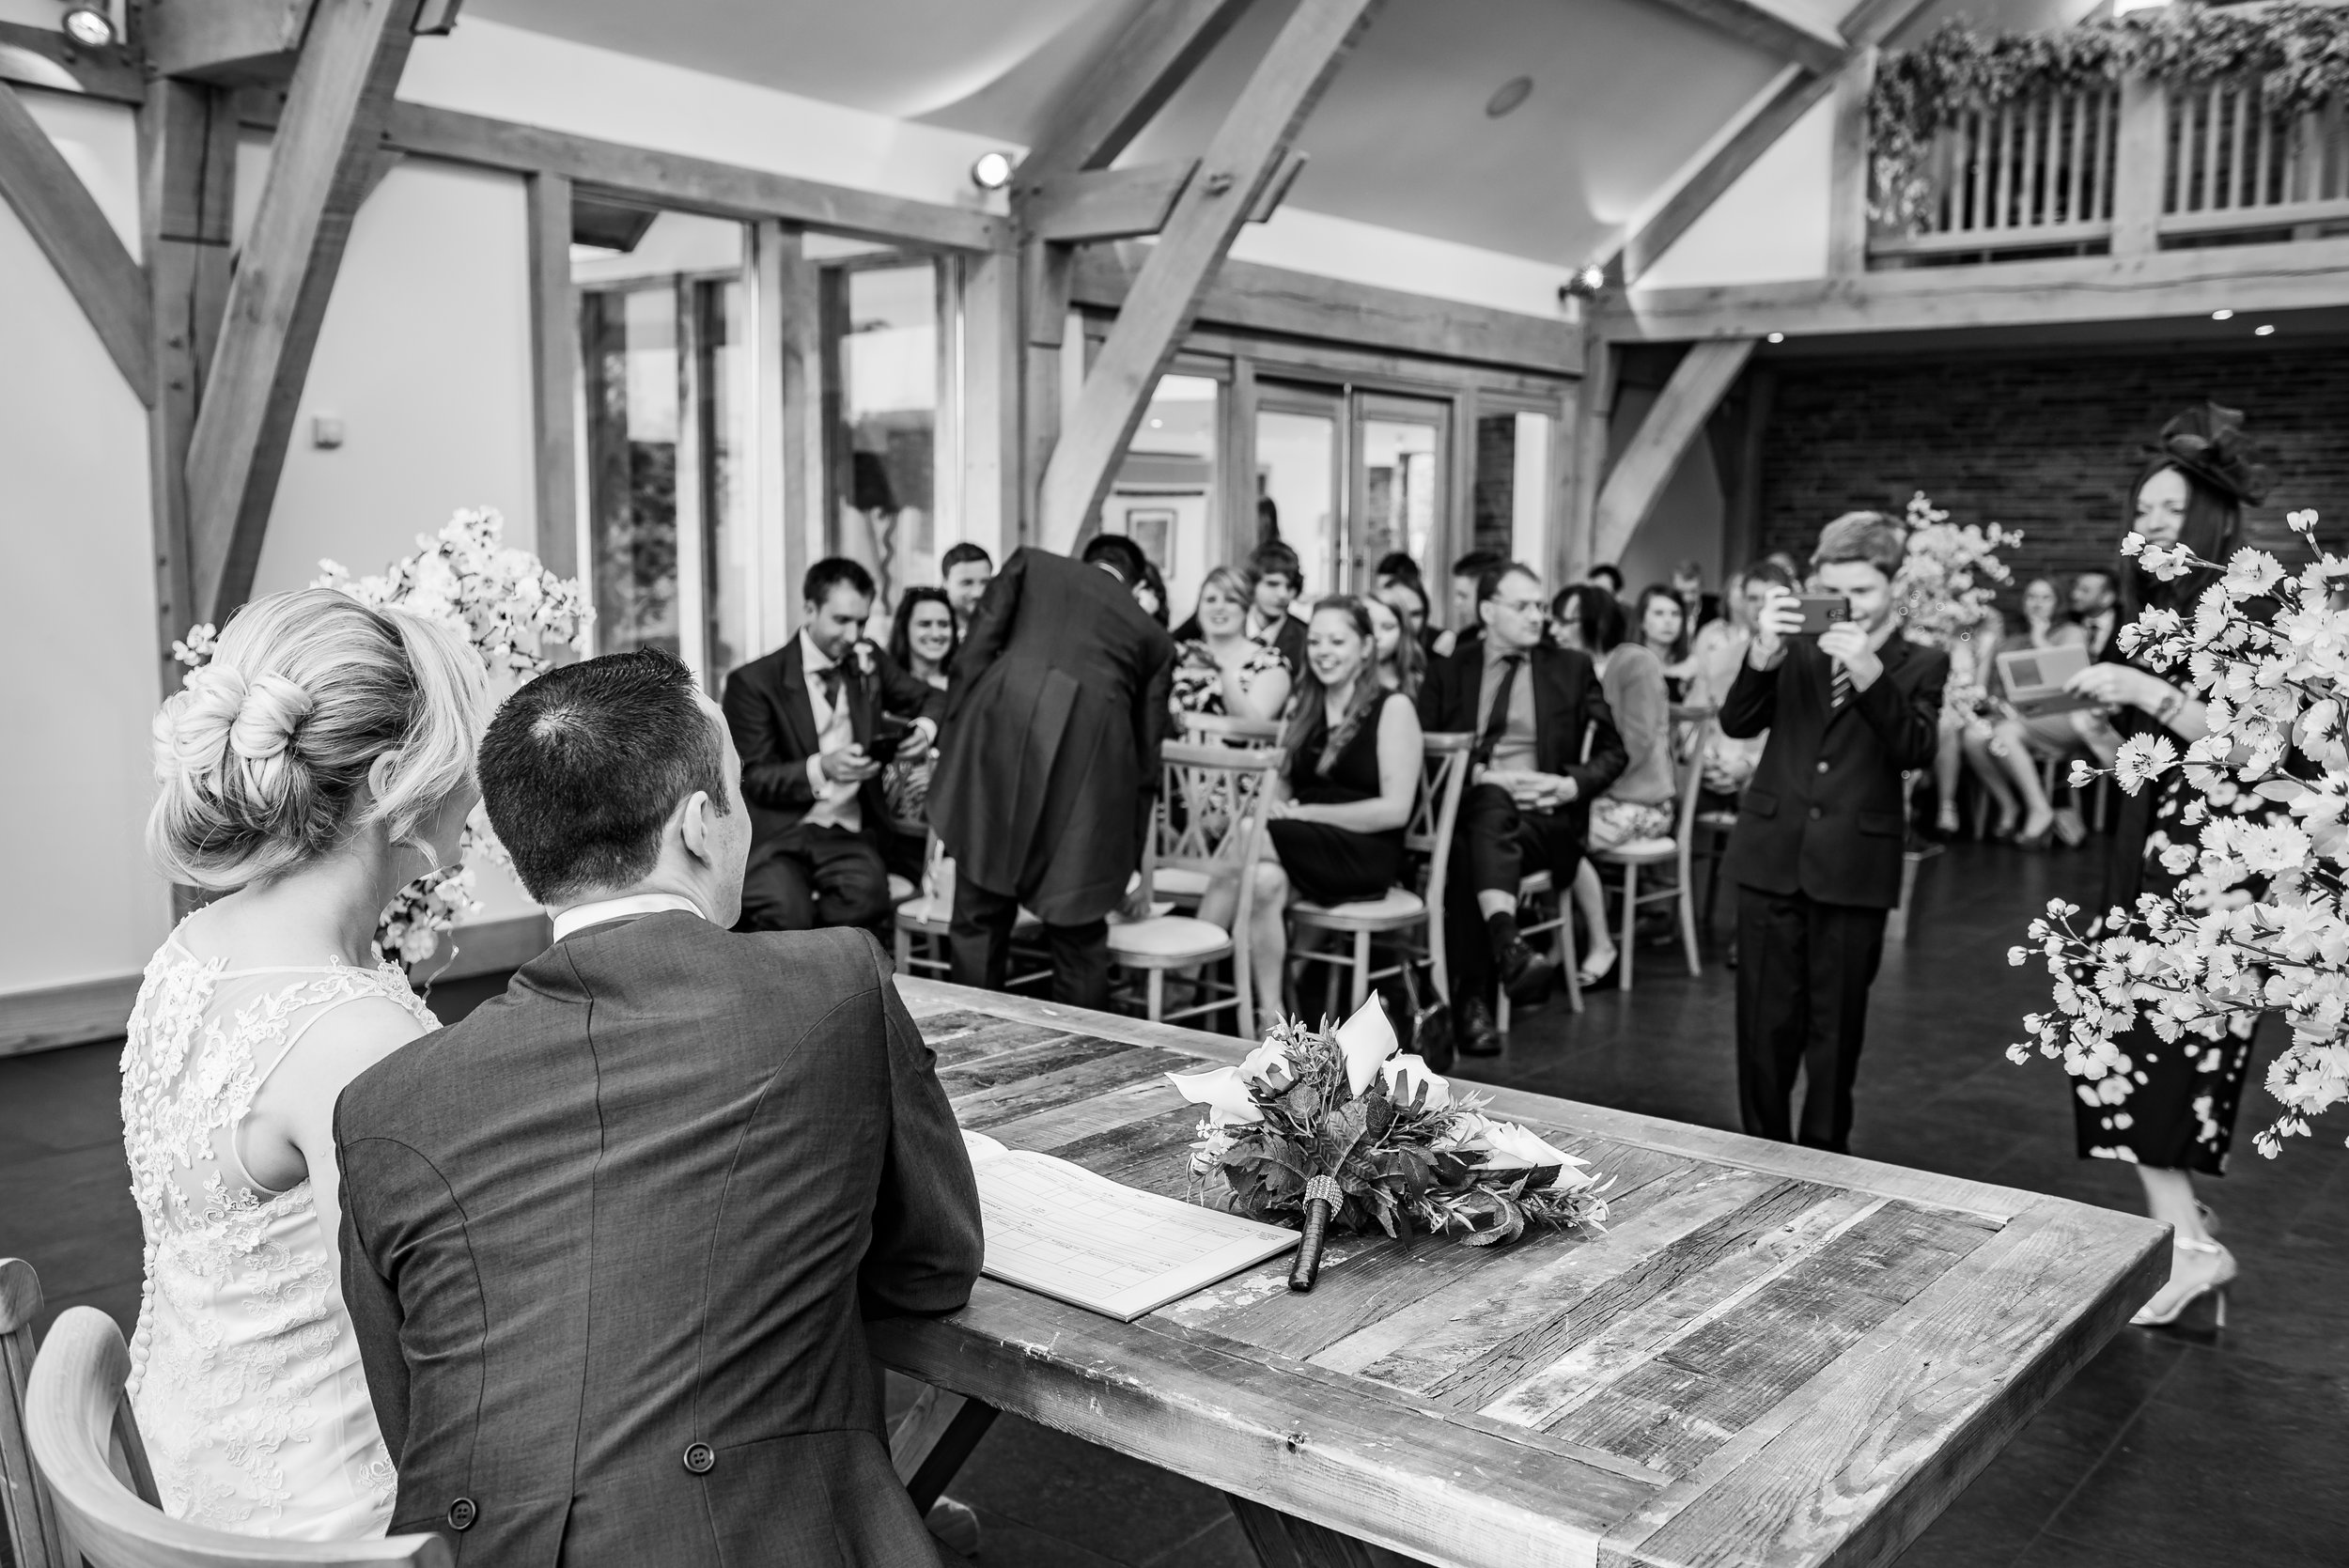 black and white wedding photography capturing memories as they go